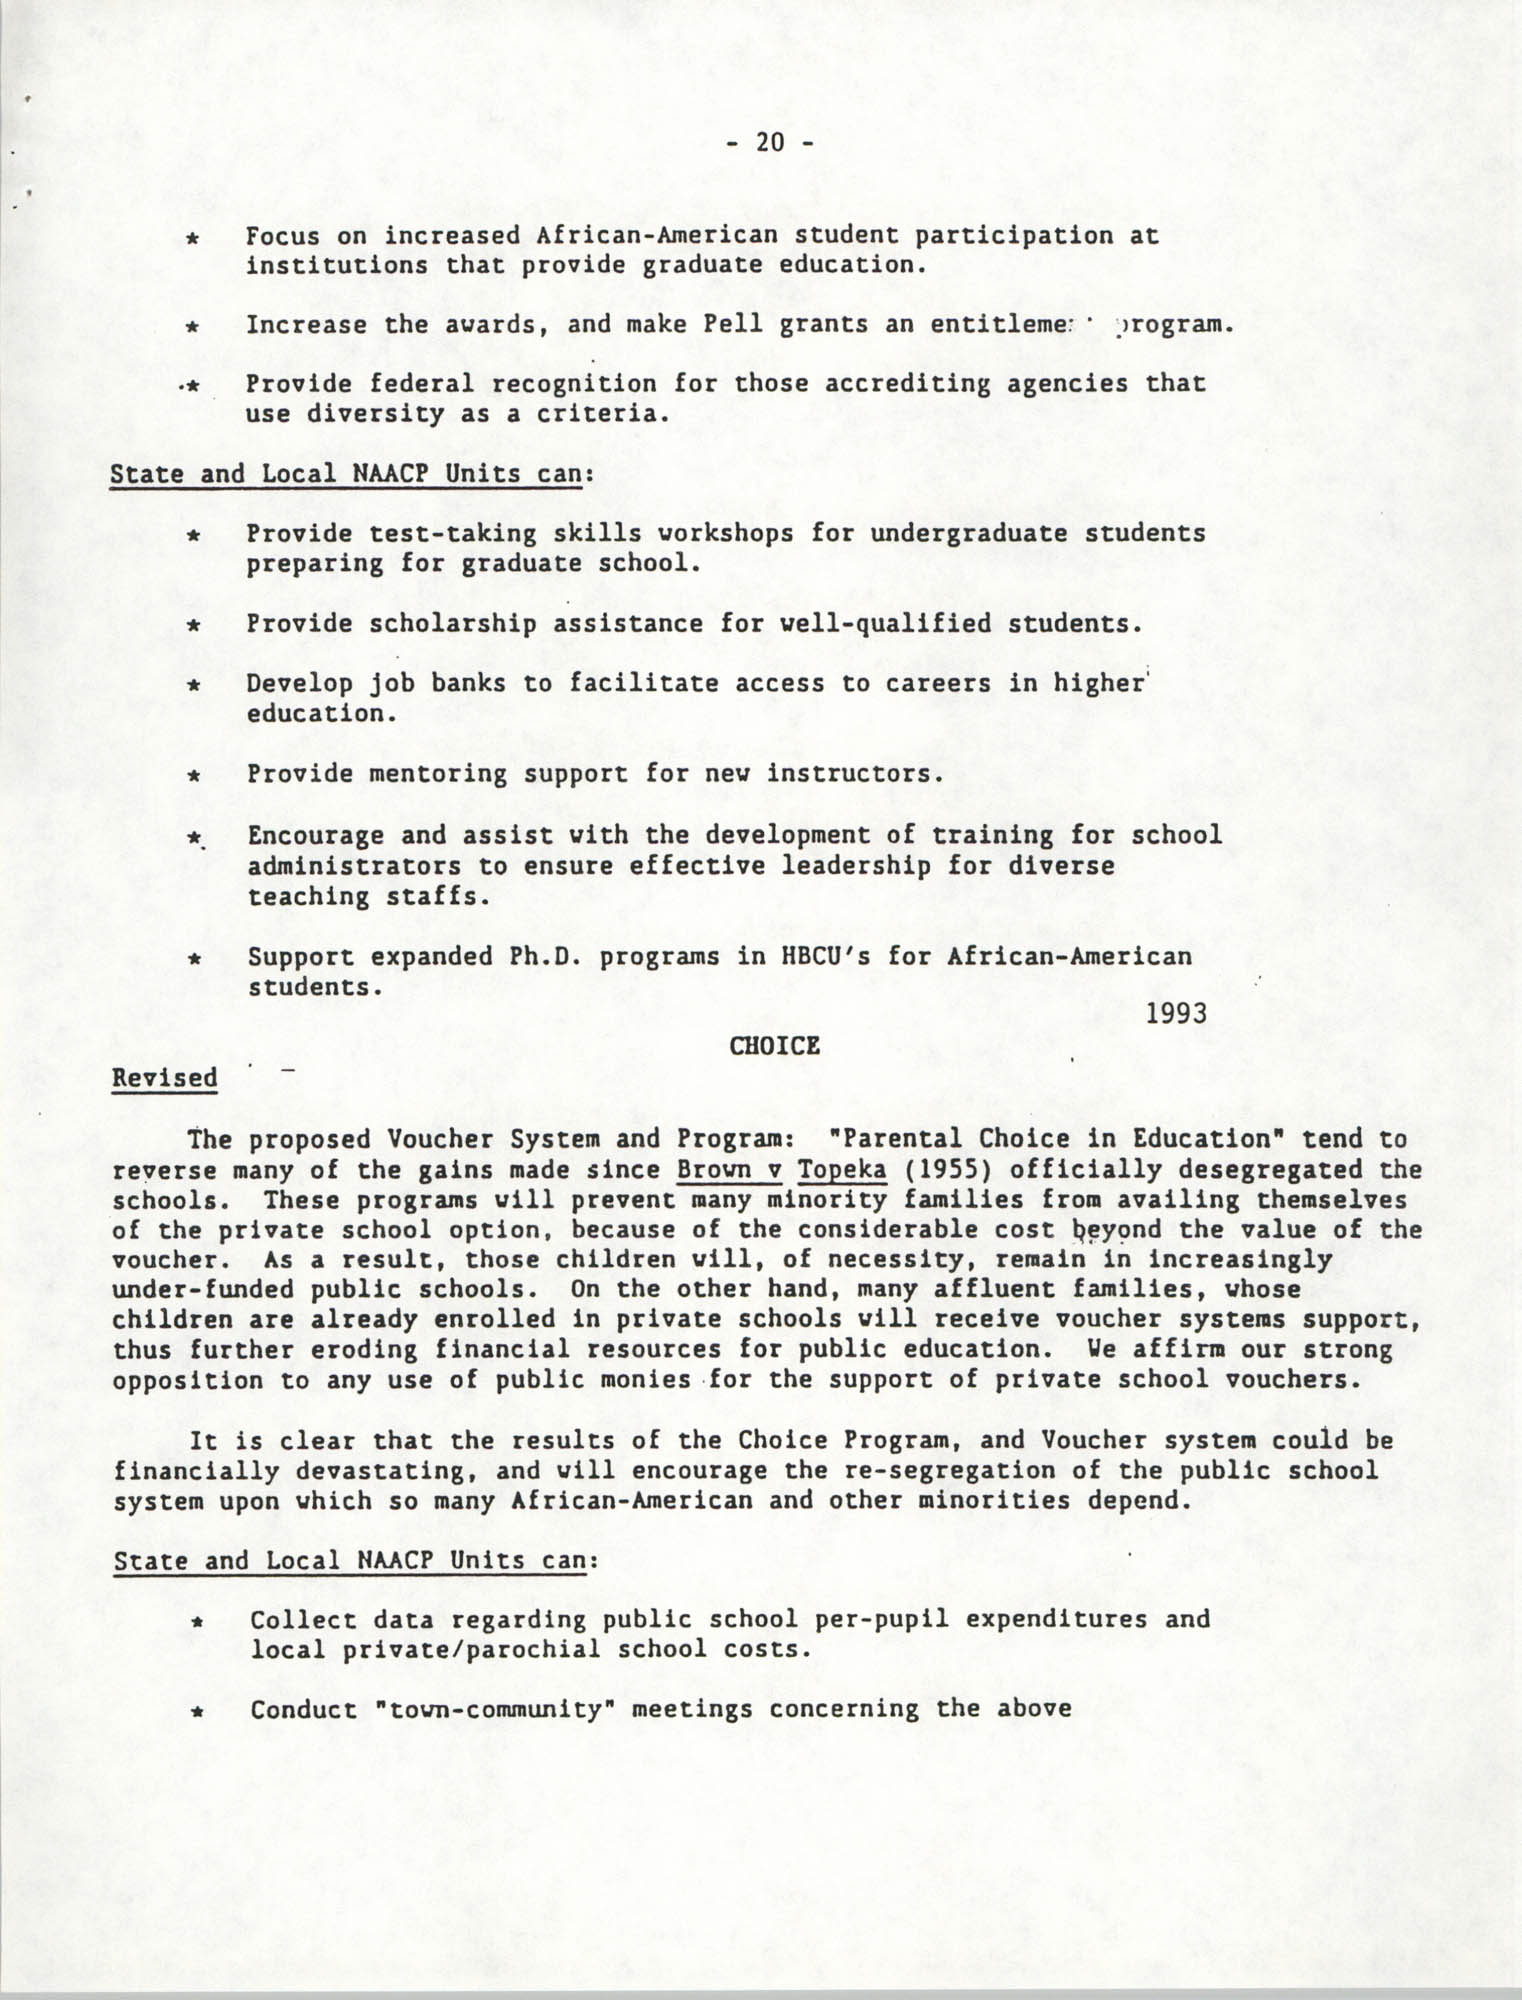 Education Resolutions 1993, Page 20